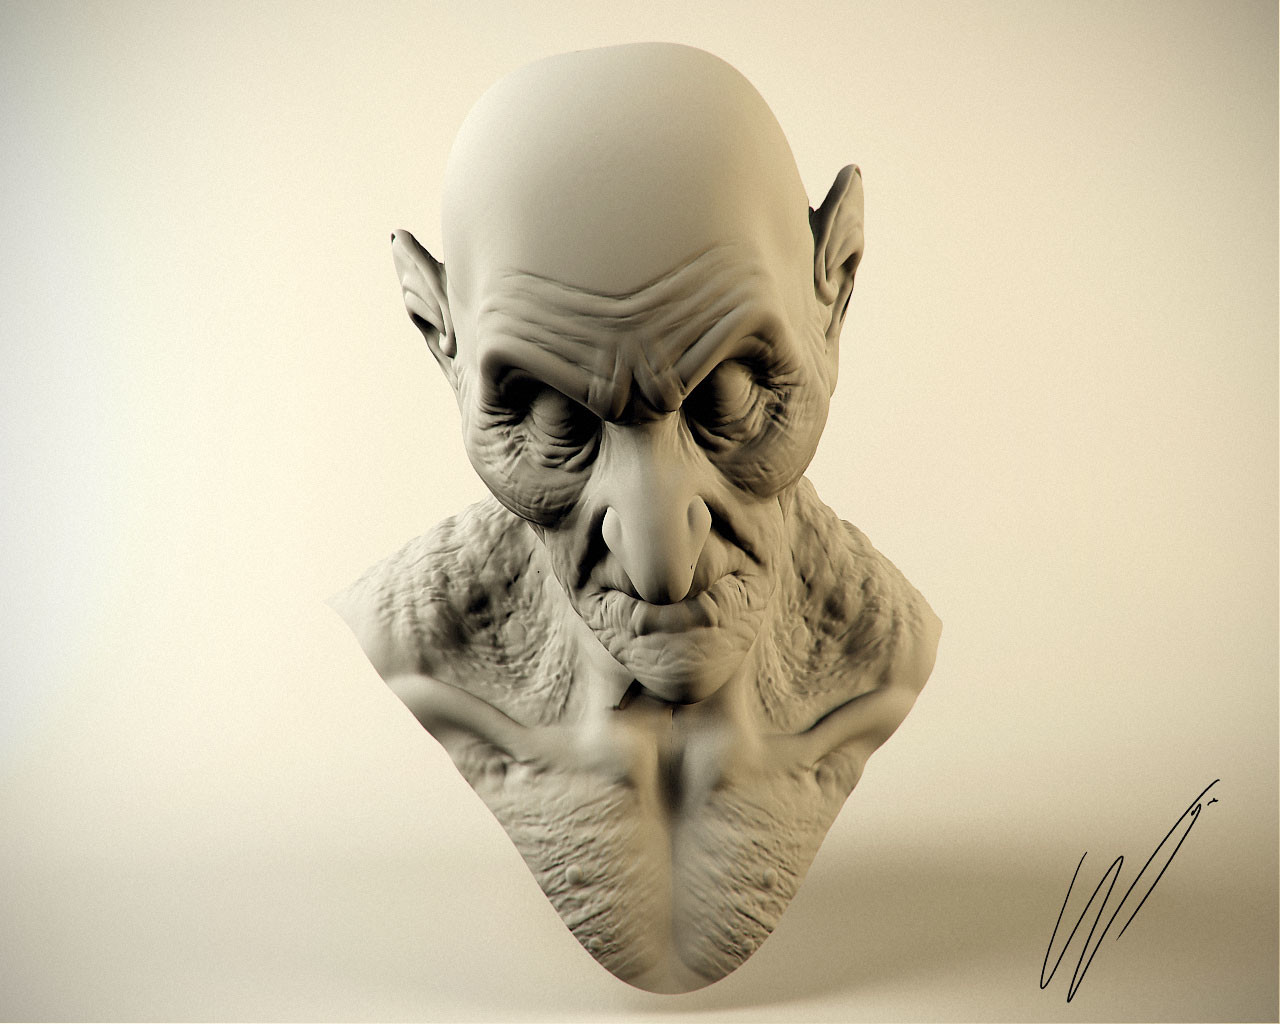 Monster concept sculpt